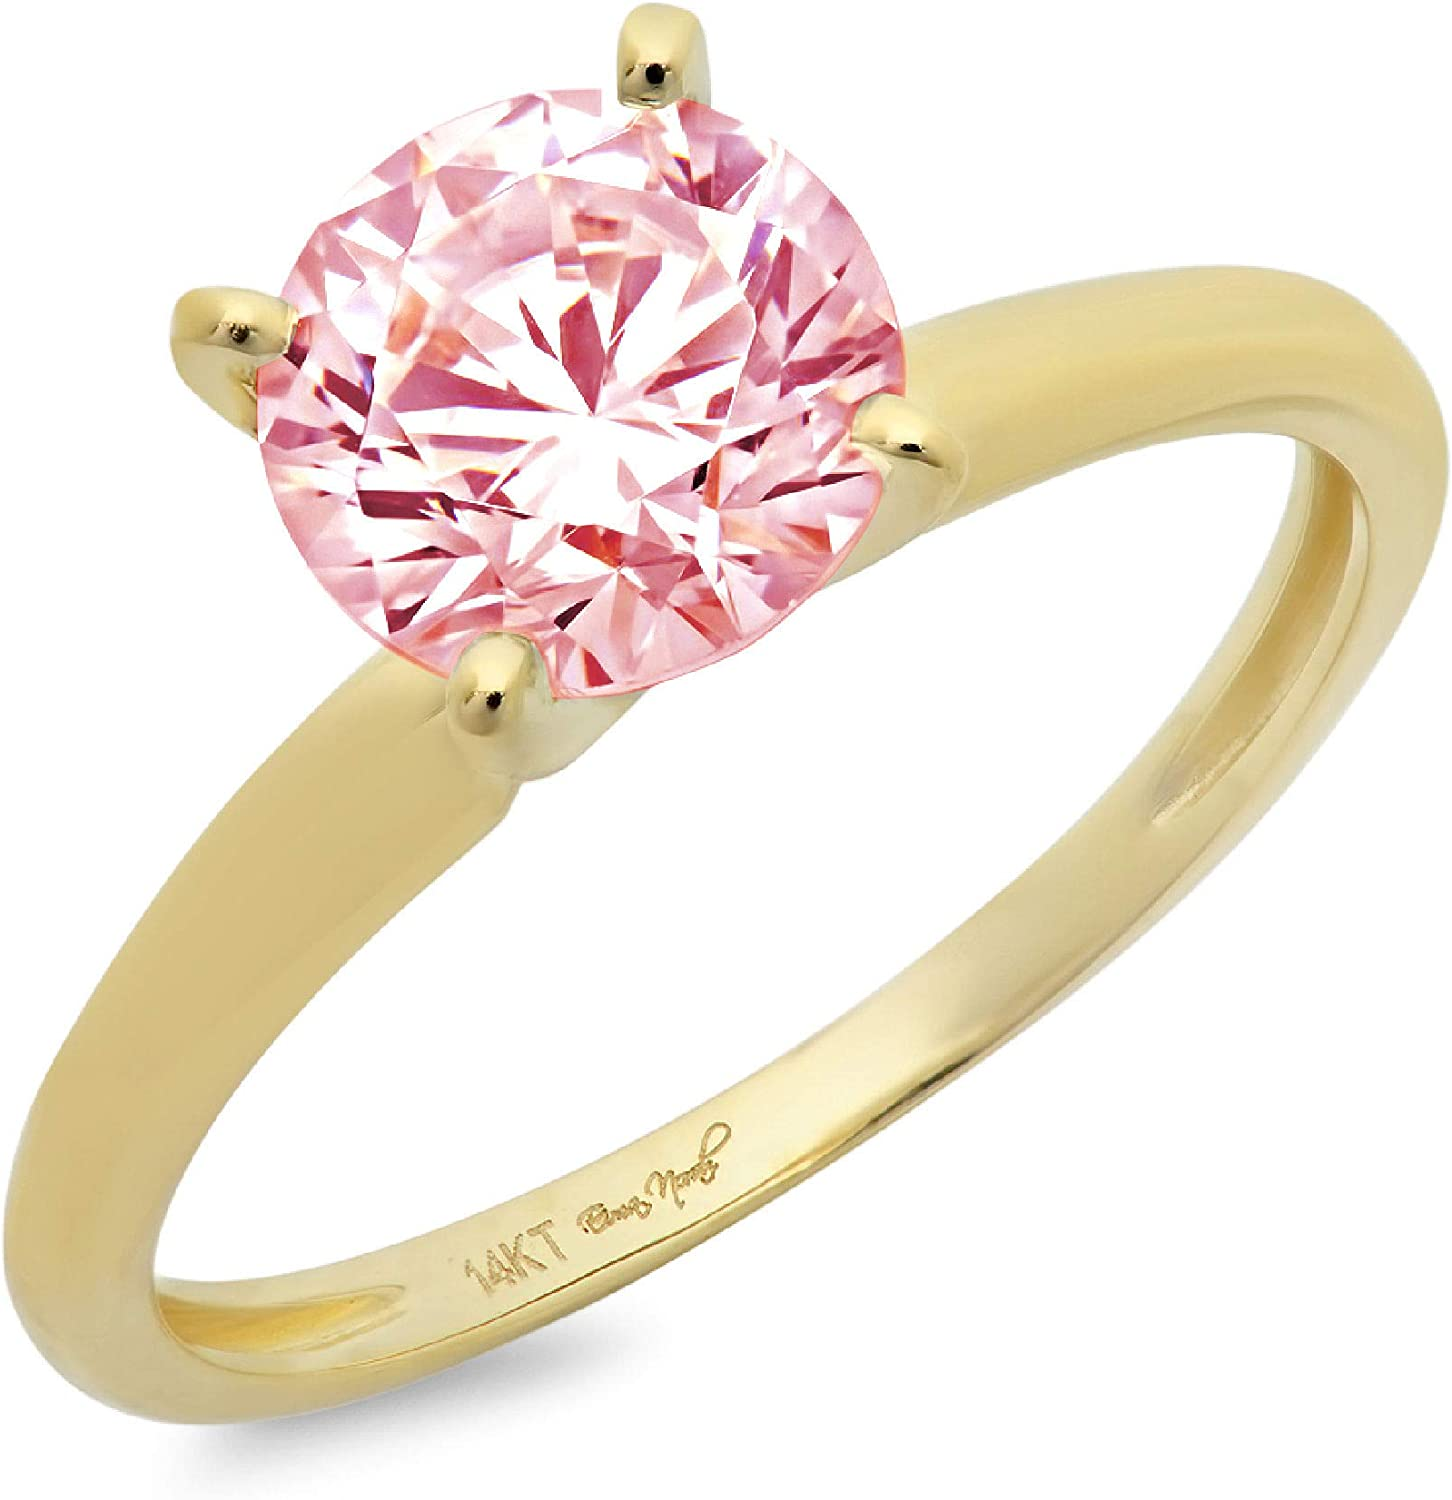 2.45ct Brilliant Round Cut Solitaire Light Pink Simulated Diamond CZ Ideal VVS1 D 4-Prong Classic Designer Statement Ring Real Solid14k Yellow Gold for Women